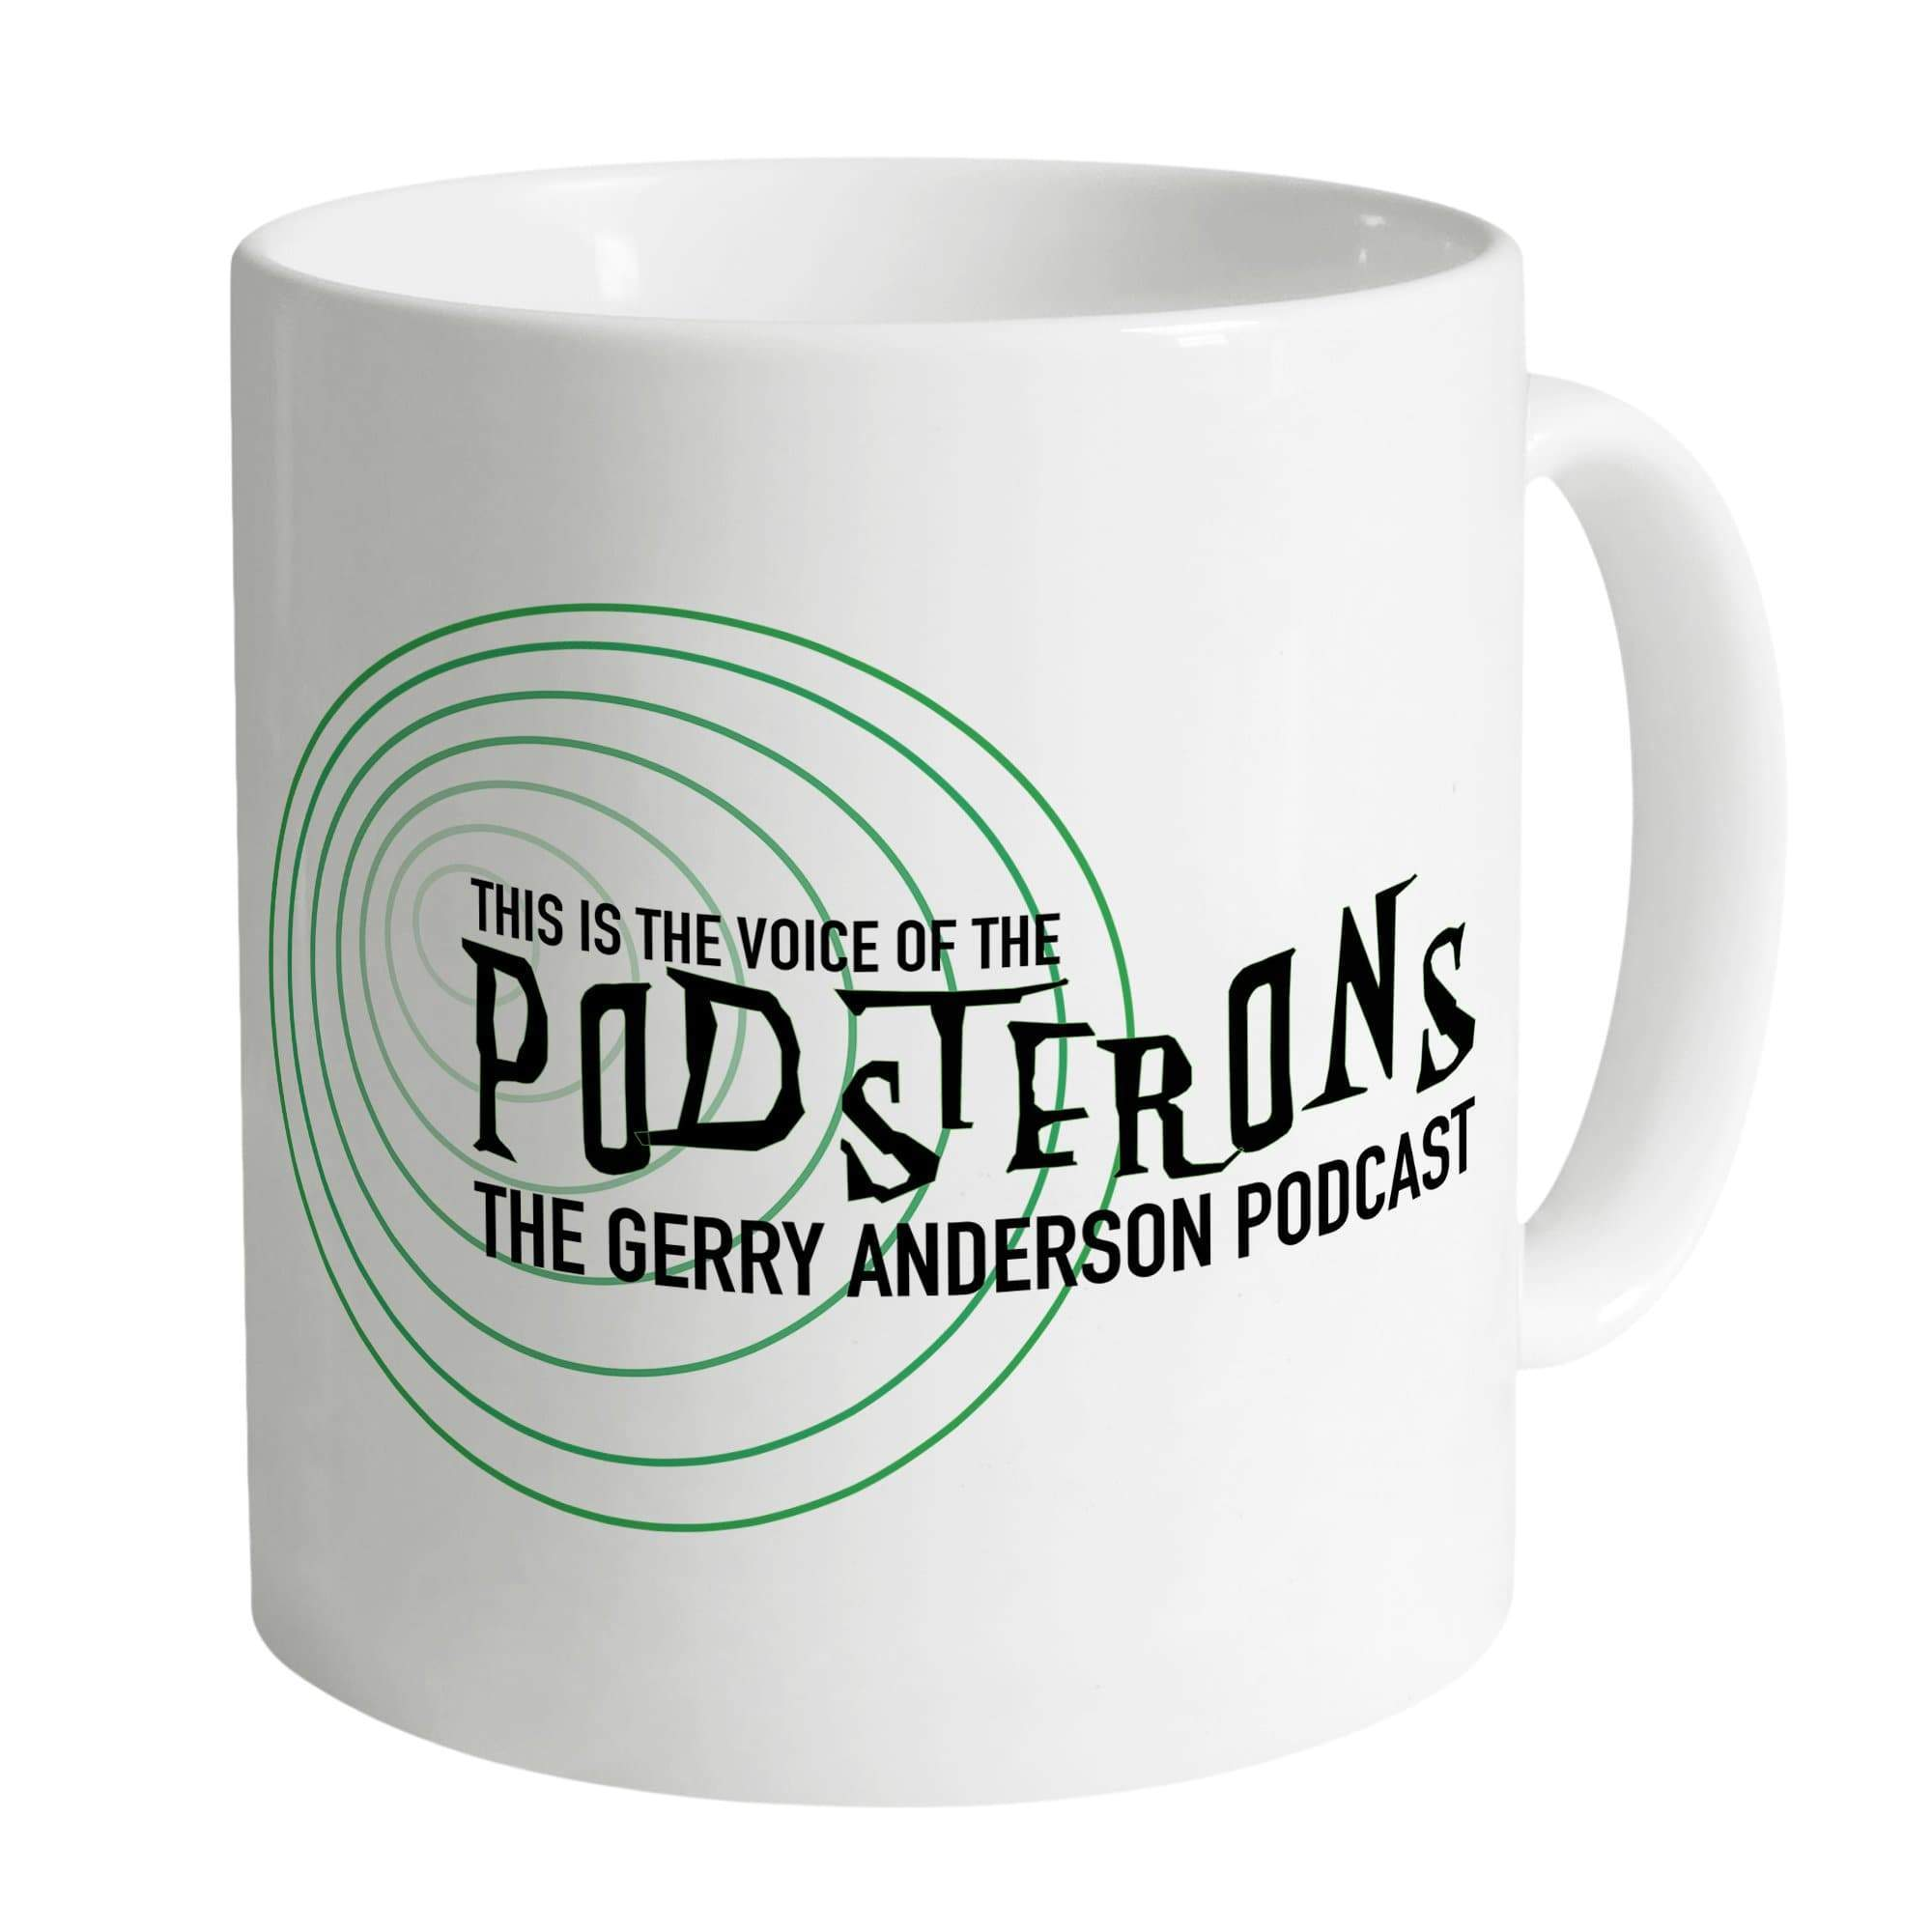 Podsterons Mug [Official & Exclusive] - The Gerry Anderson Store